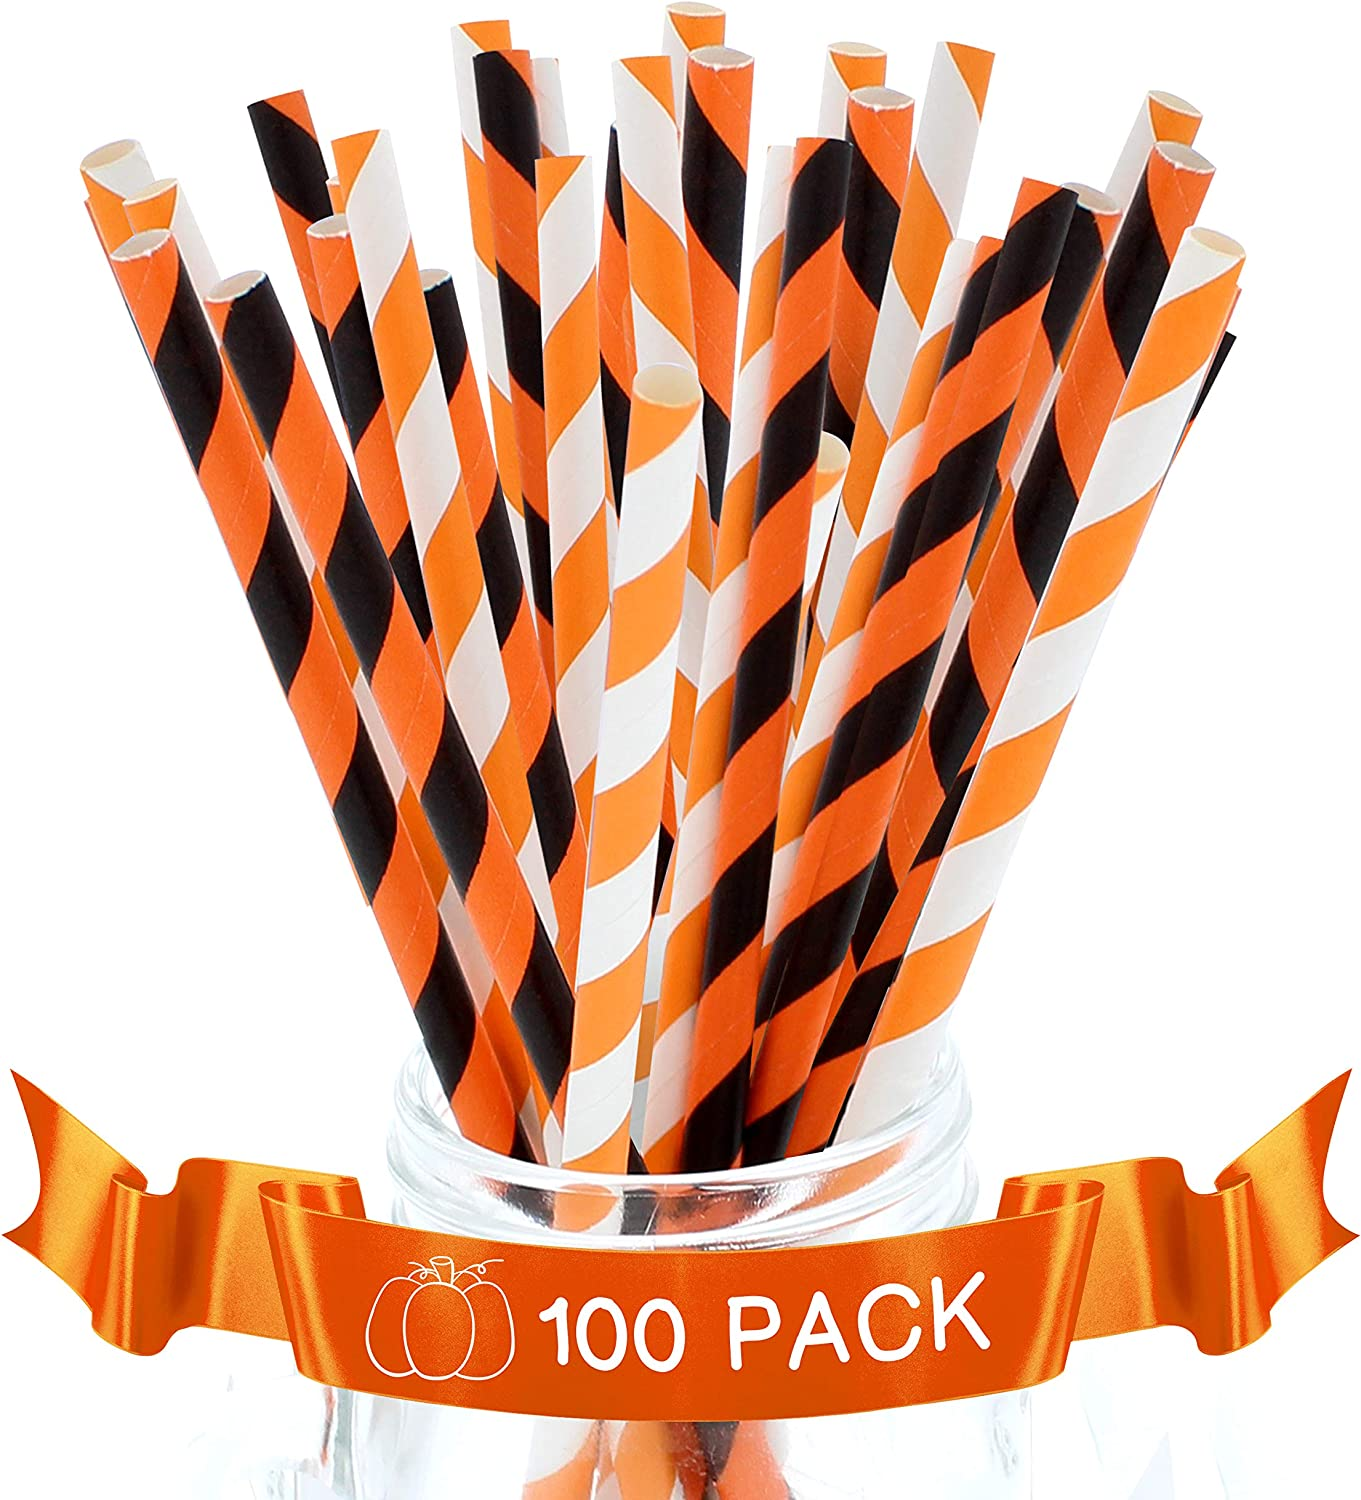 Party On Tap Paper Straws - Orange, White and Black Striped Party Straws - Pack of 100 - Biodegradable and Disposable Pumpkin Party Decorations